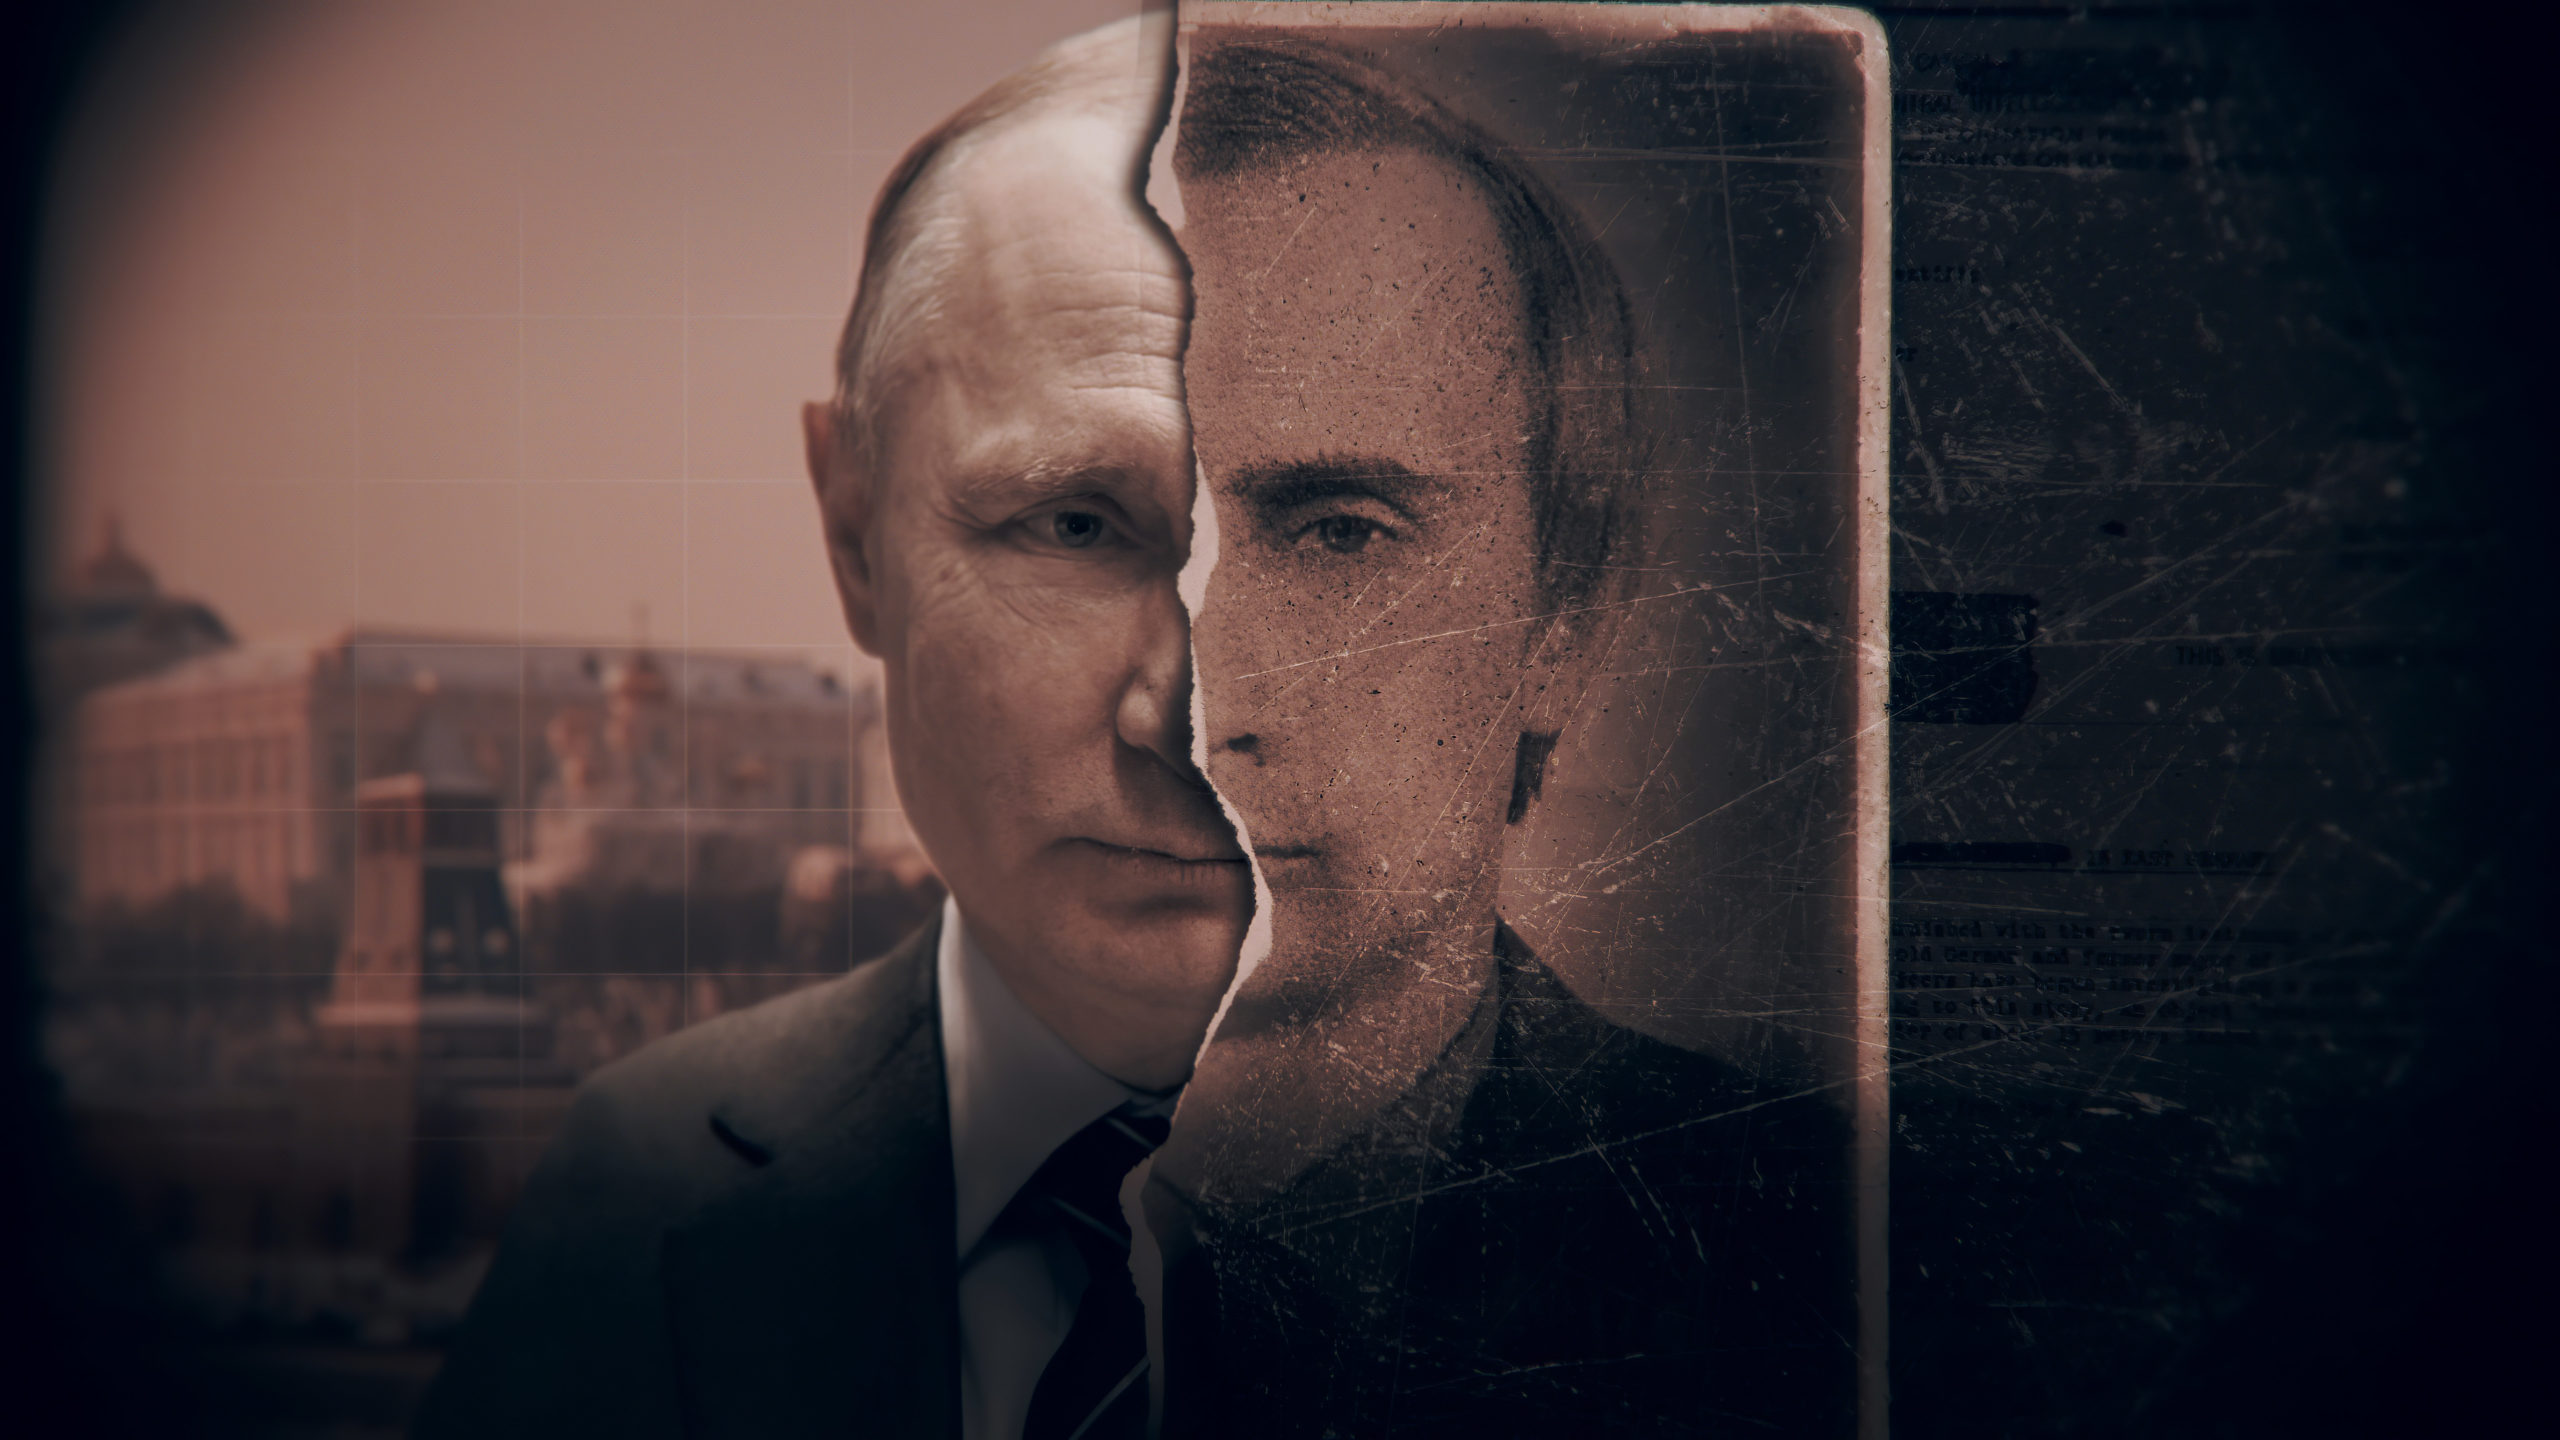 Putin: A Russian Spy Story (Copyright Channel 4)